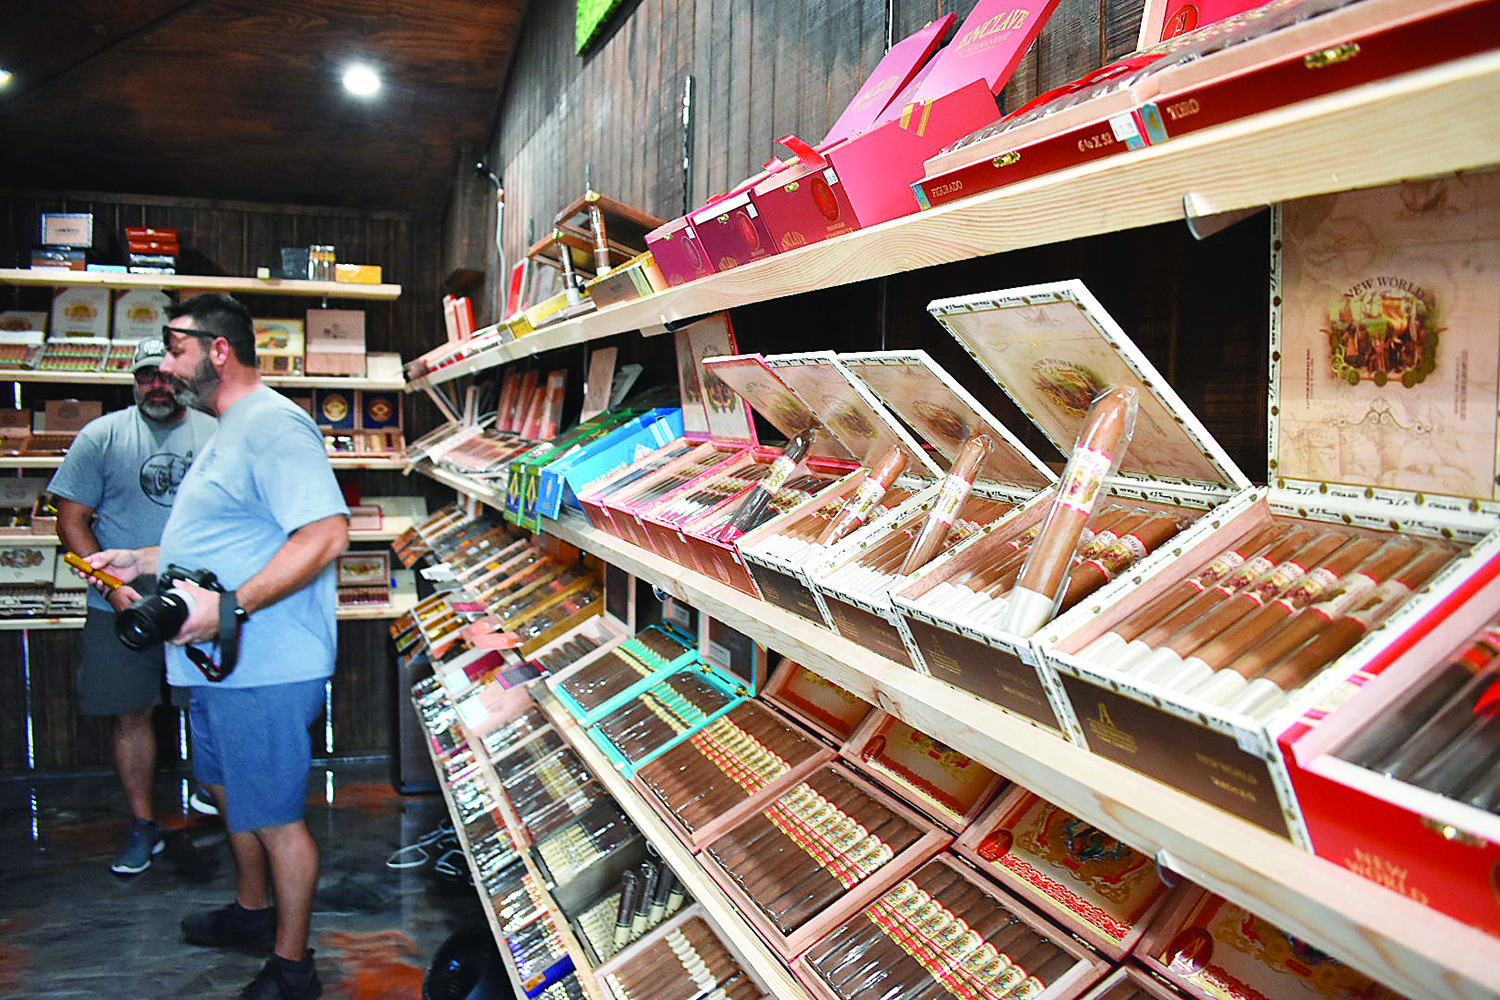 A large number of hand-rolled cigars are displayed at the Cigar Box prior to its ribbon-cutting ceremony on Tuesday.